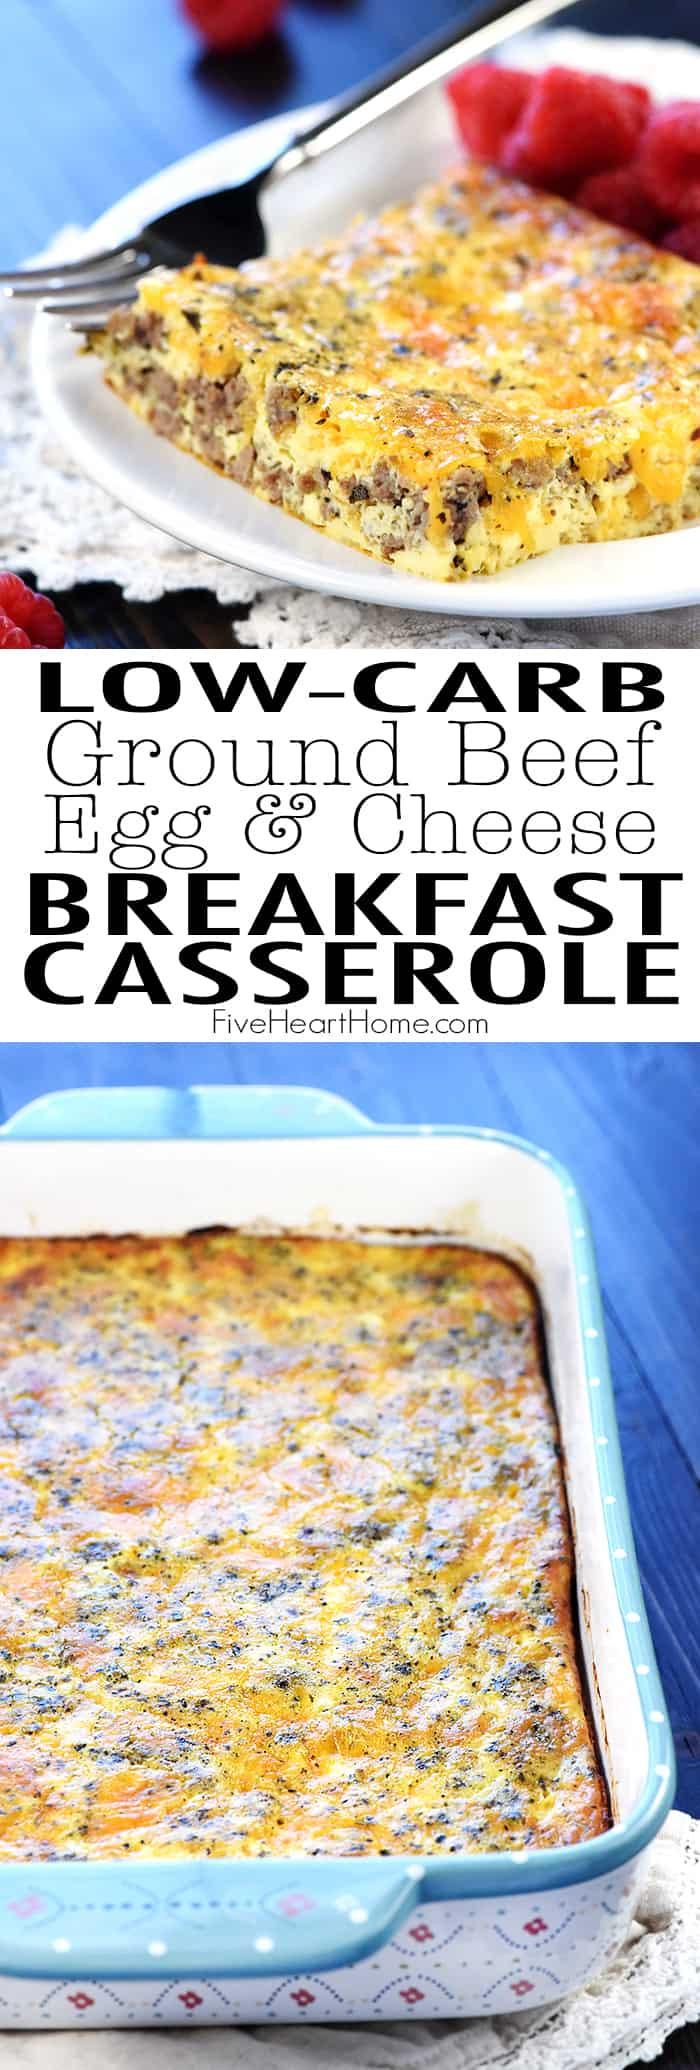 Low Carb Ground Beef Recipes Cream Cheese  Ground Beef Egg & Cheese Breakfast Casserole